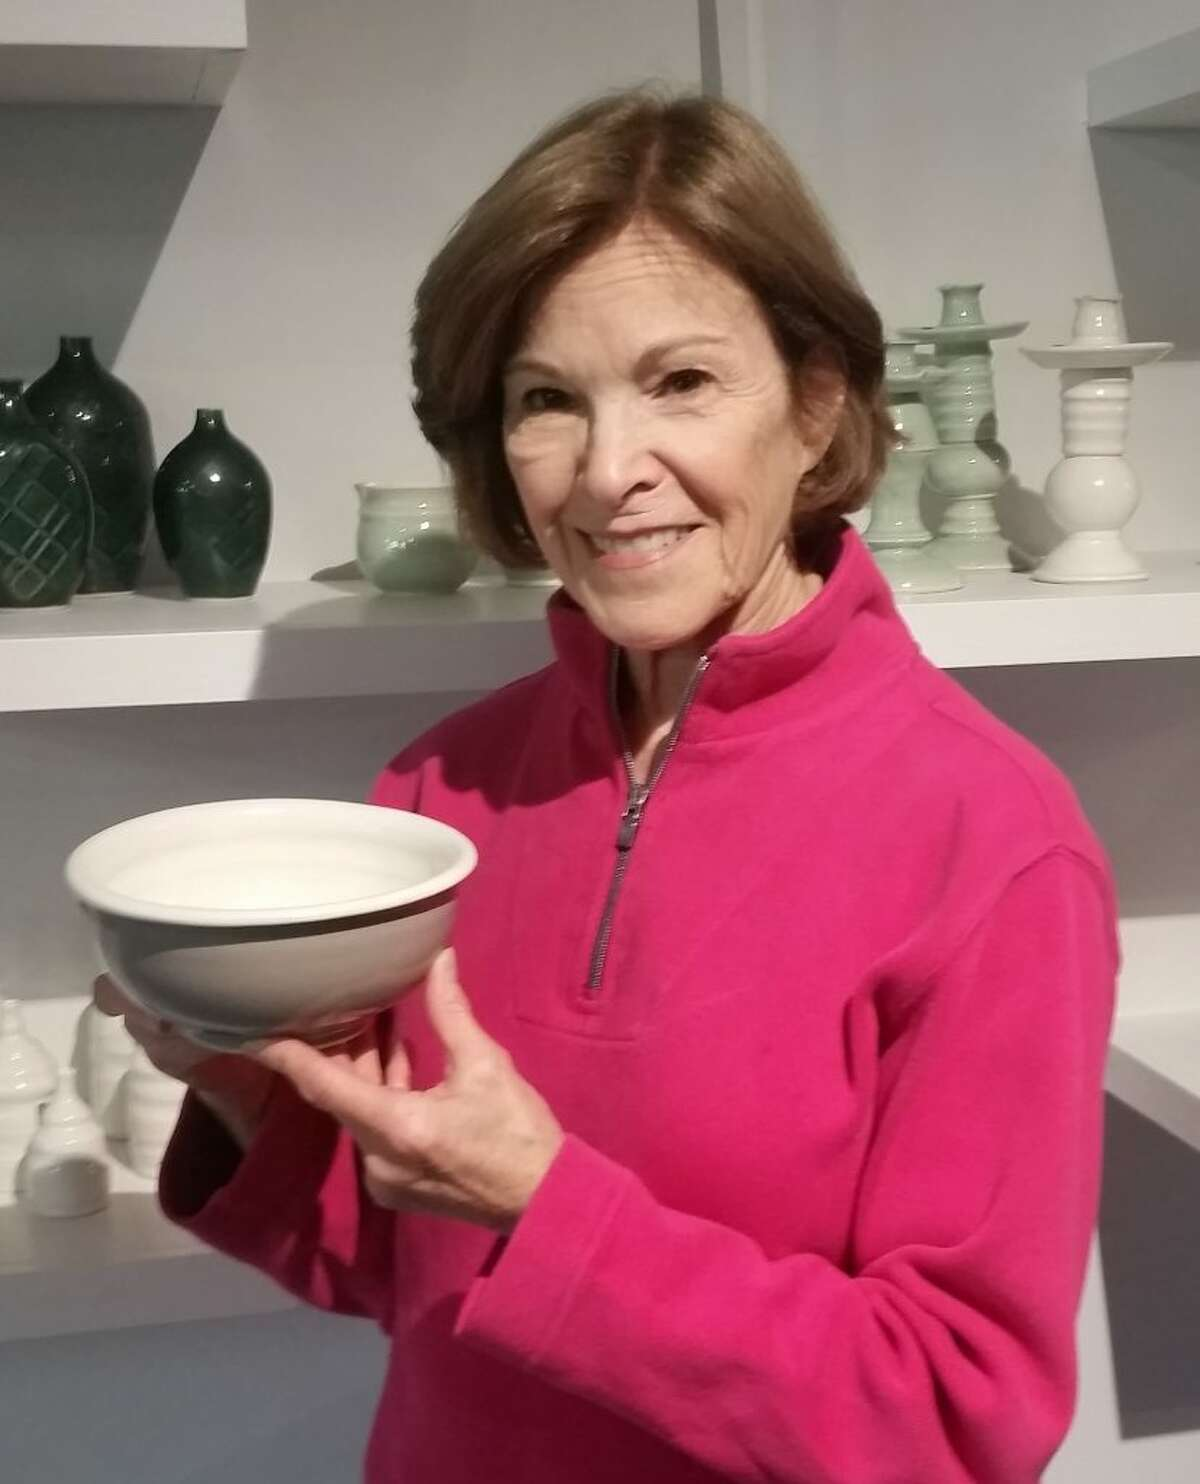 CCA member Lois Unger will display her handcrafted wares at ARTique 2018.